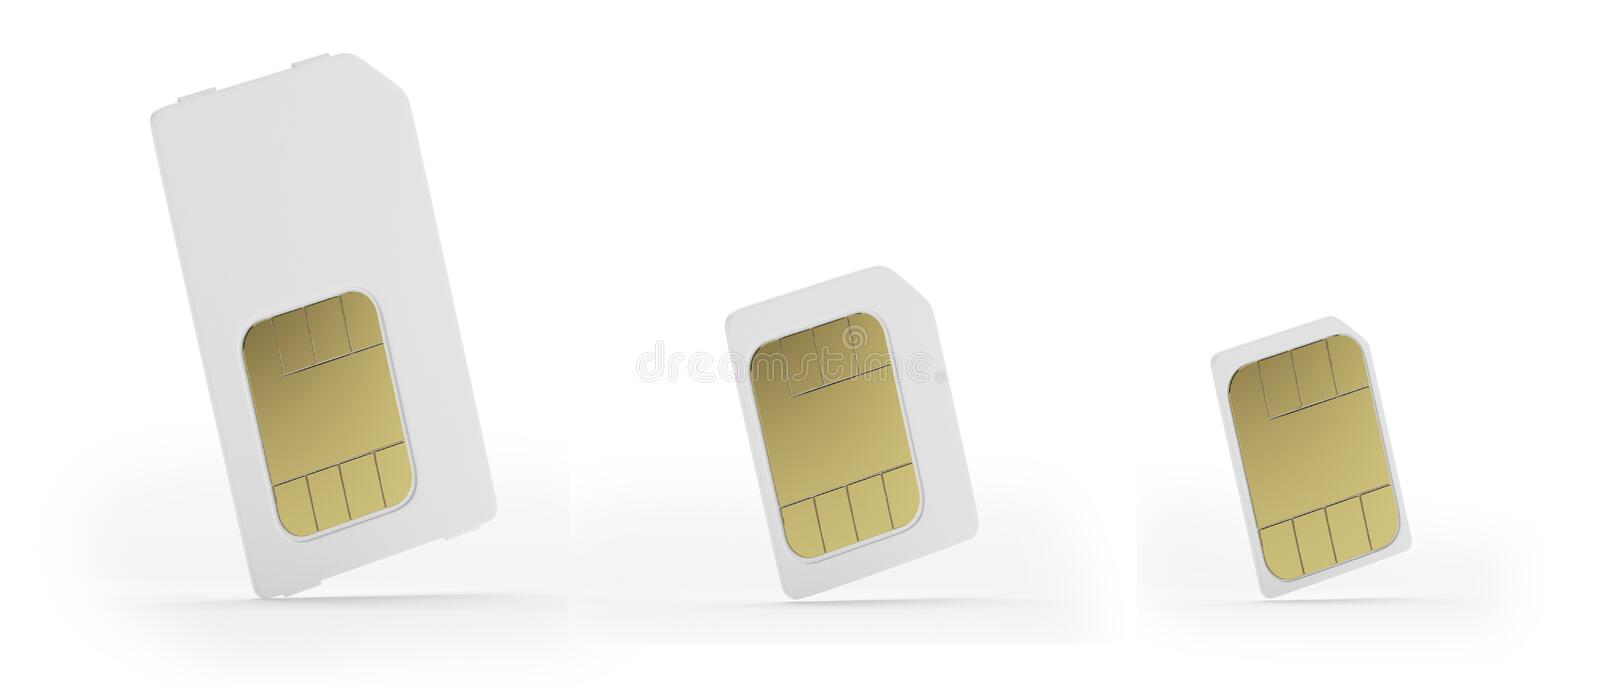 how to download photos from sim card to computer